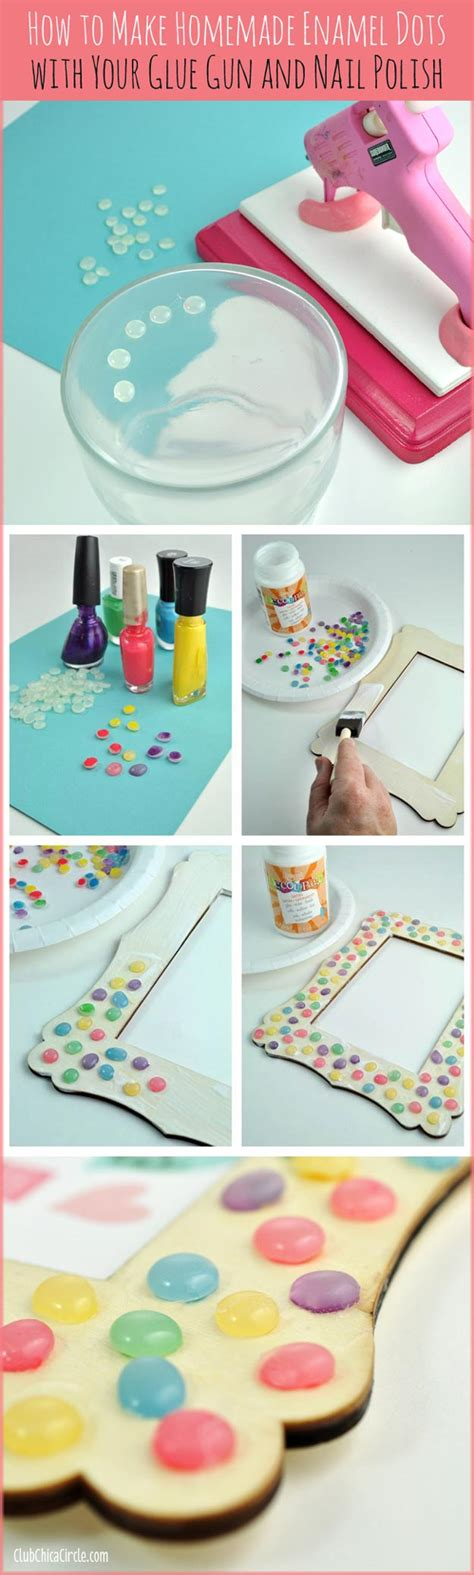 diy craft projects 31 incredibly cool diy crafts using nail diy